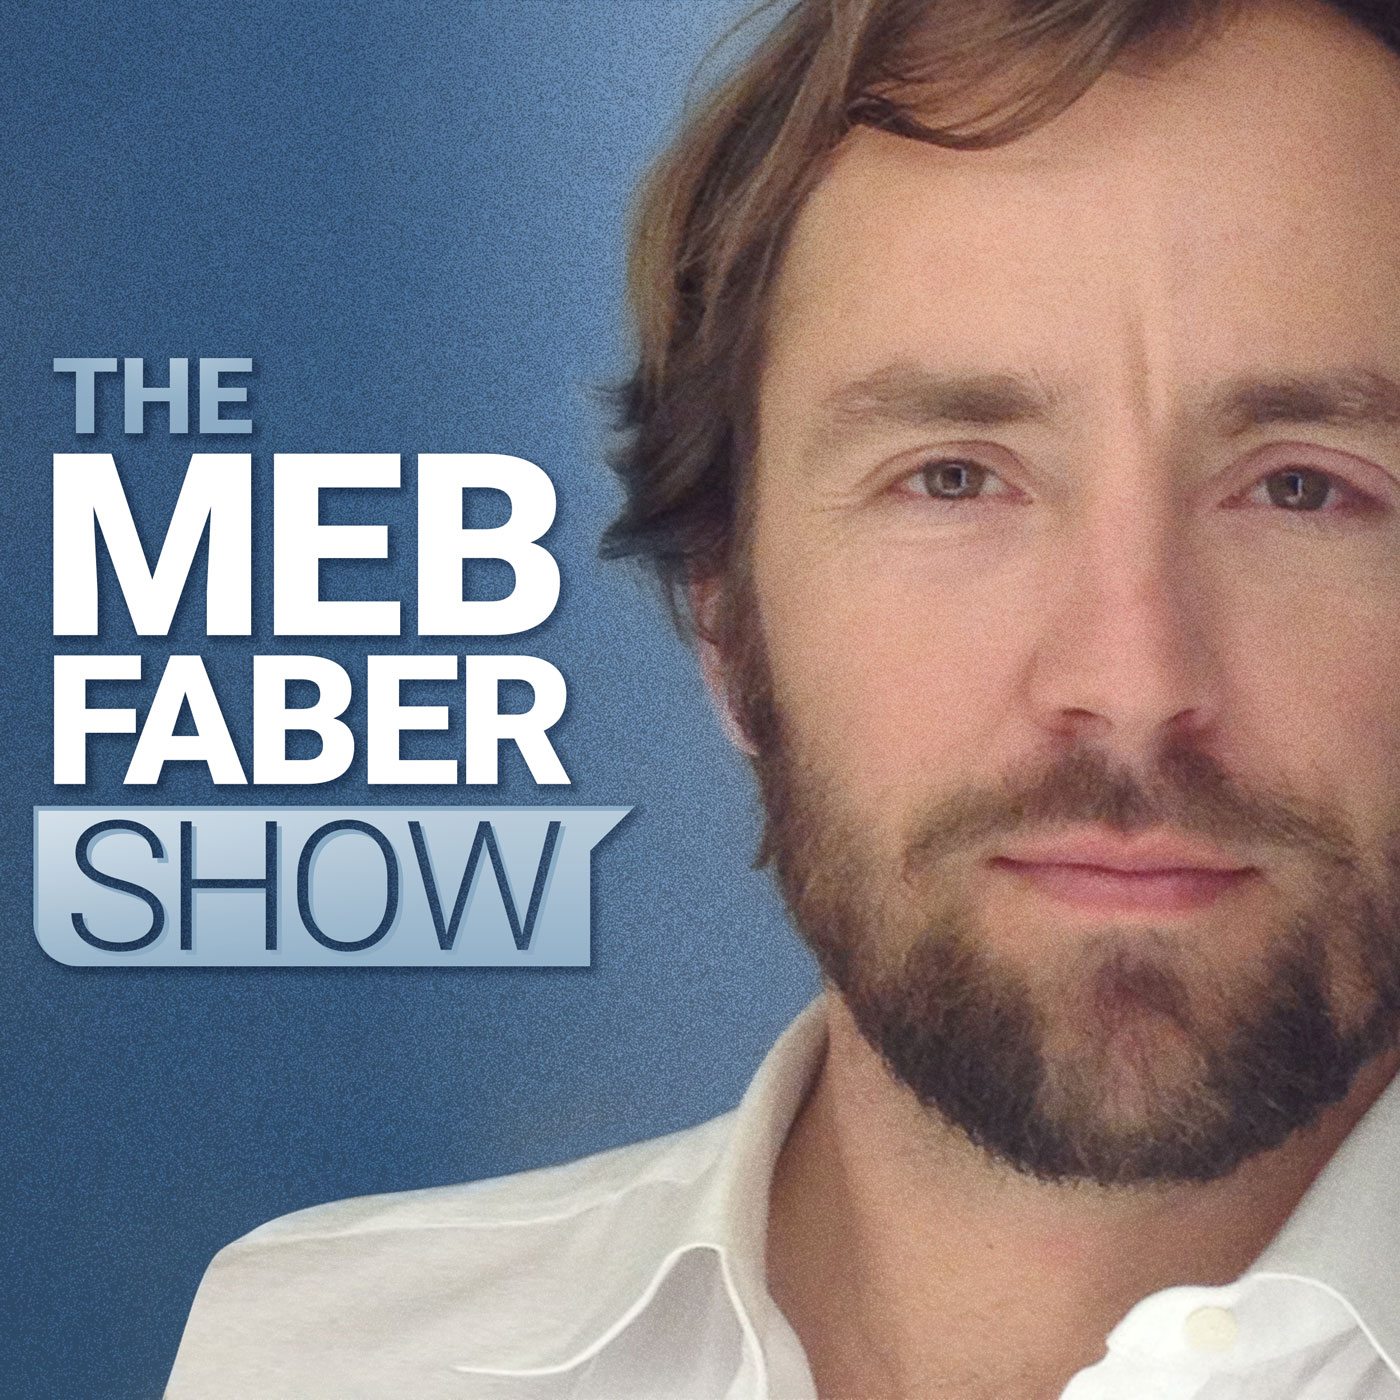 The Meb Faber Show show art